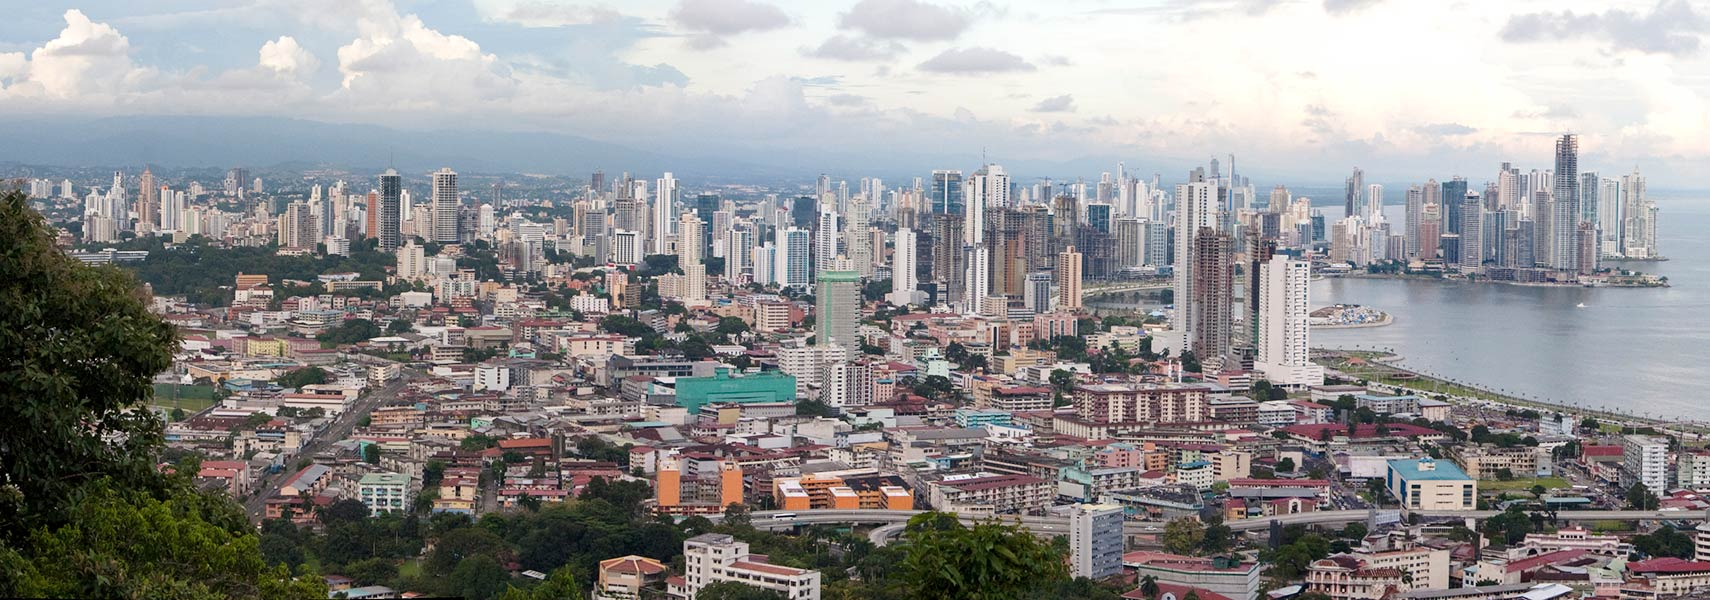 google maps spanish with Google Map Panama City on Details together with Drachenbruecke likewise Travel Itinerary A Week Around The Extended French And Spanish Basque Country further Spanisharmadamap further Details.